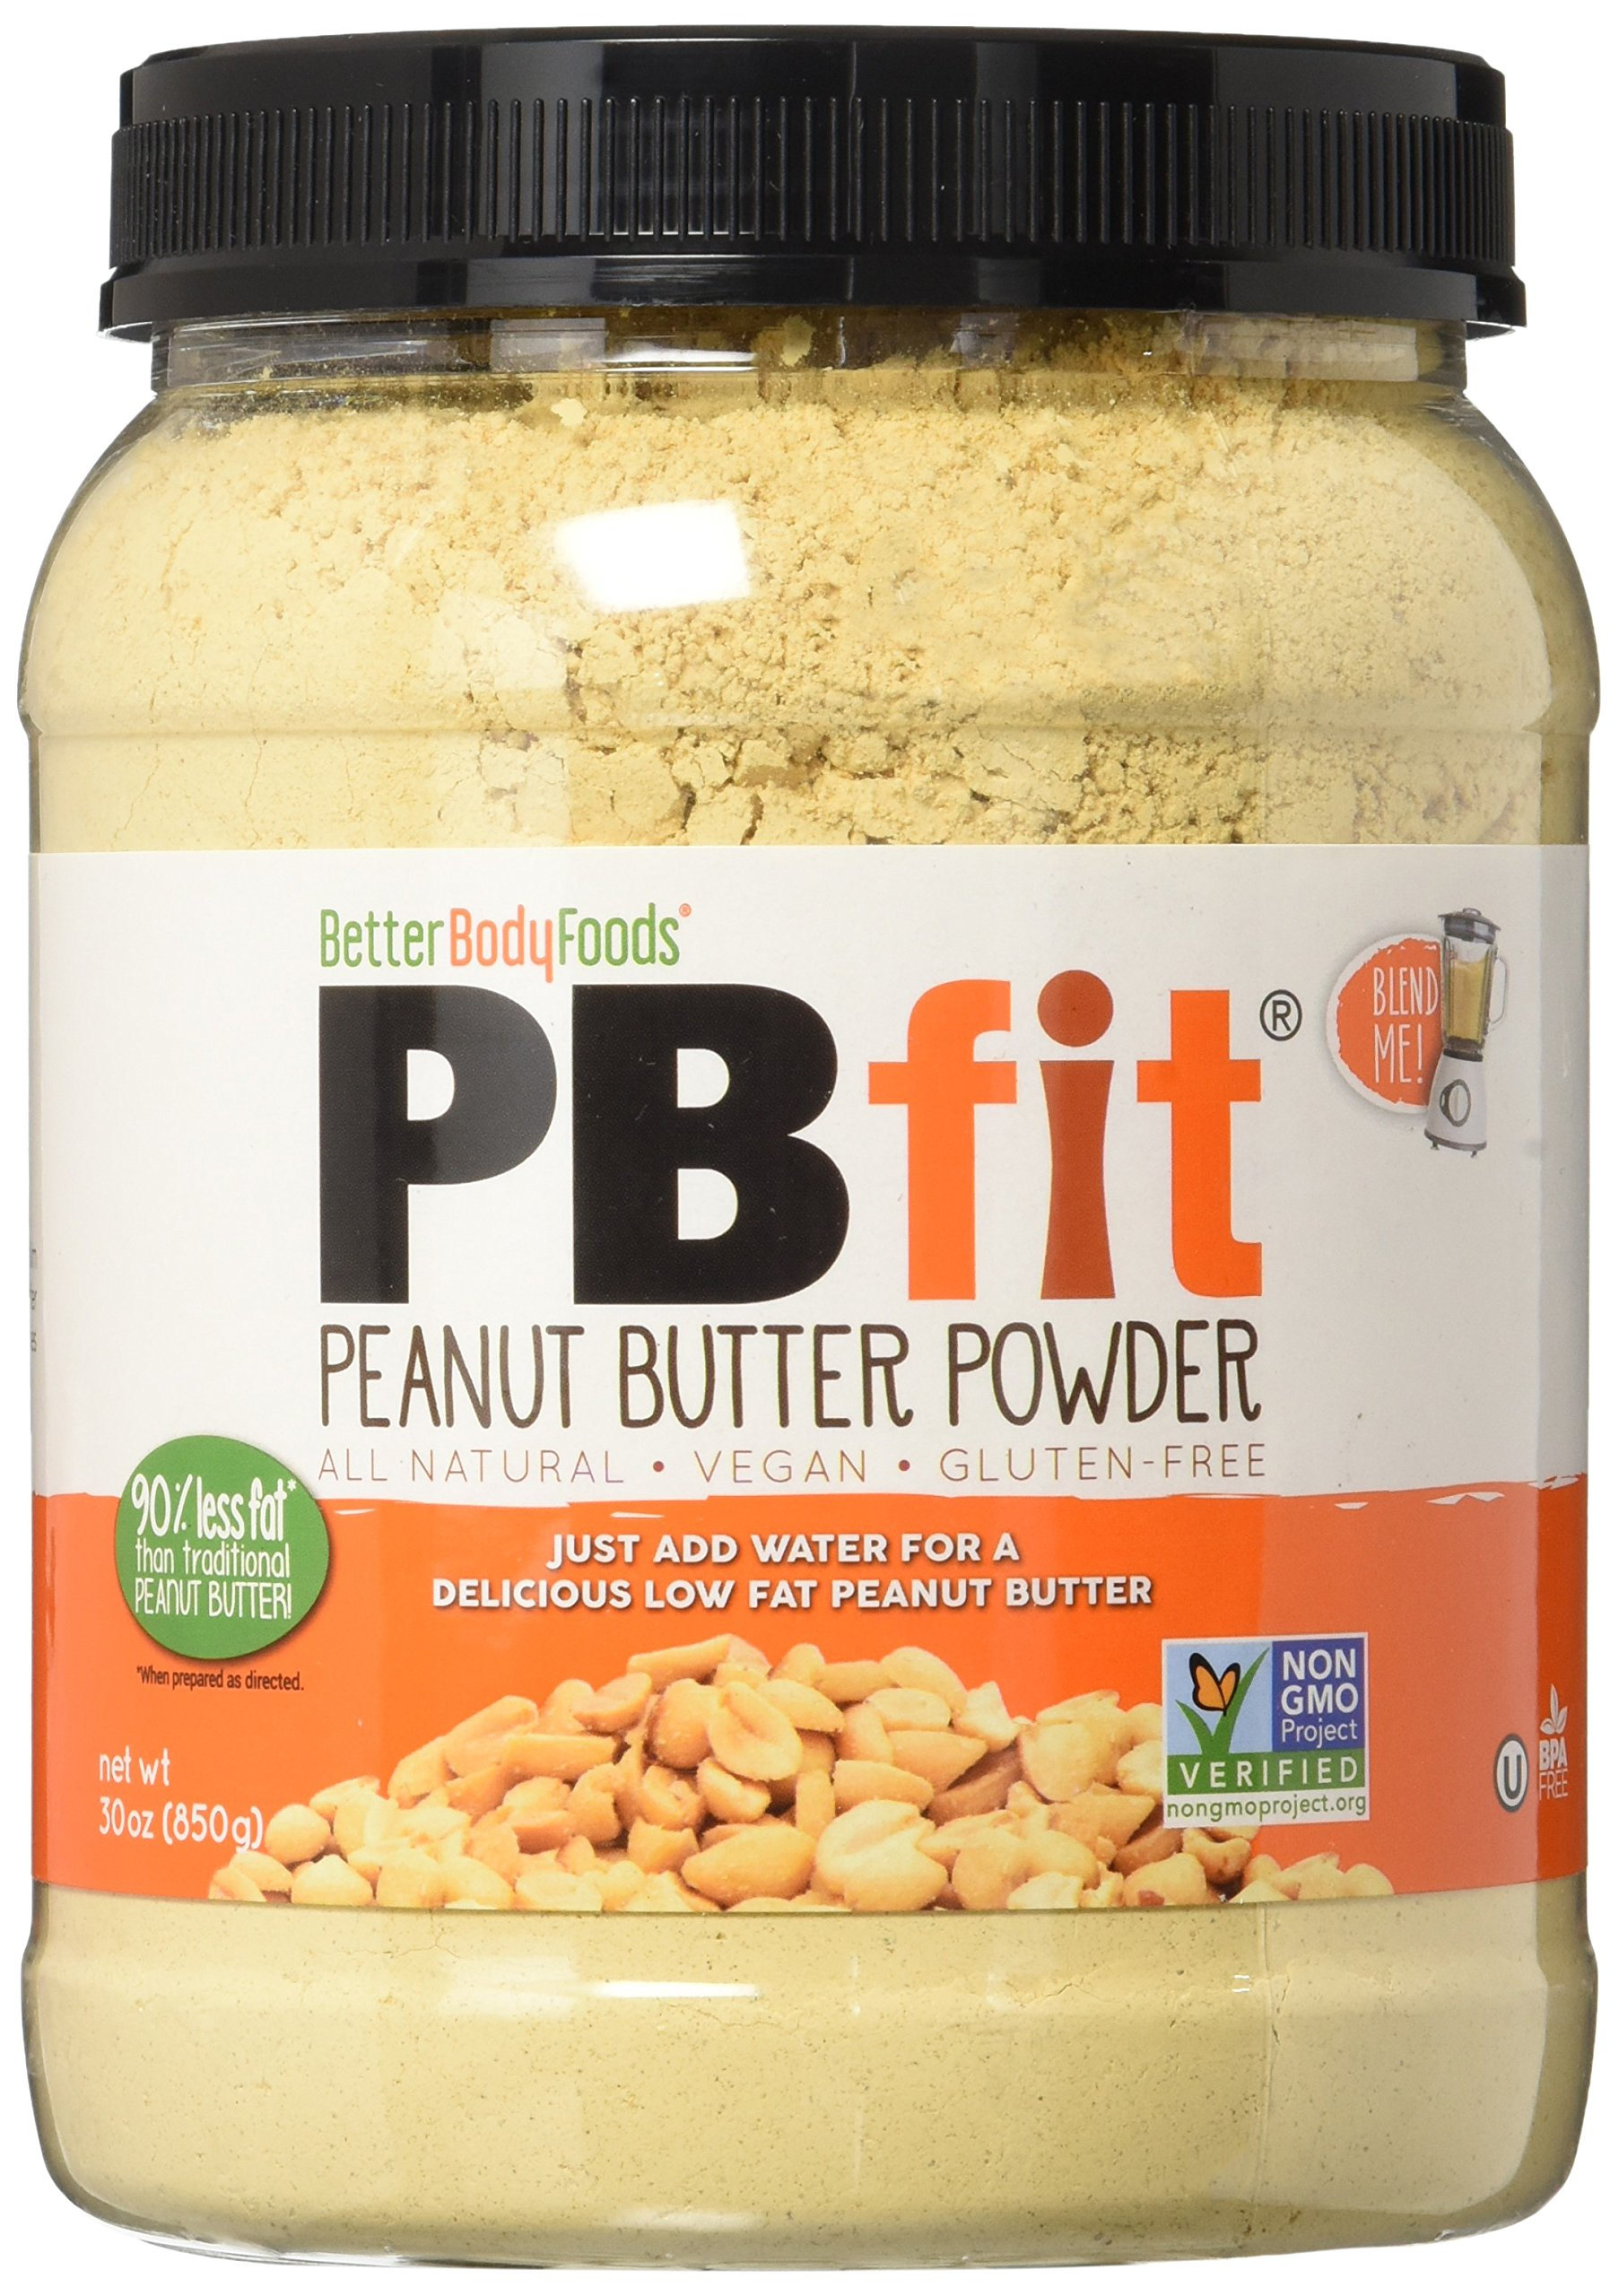 PBfit All-Natural Peanut Butter Powder 30 Ounce, Peanut Butter Powder from Real Roasted Pressed Peanuts, High in Protein, Natural Ingredients